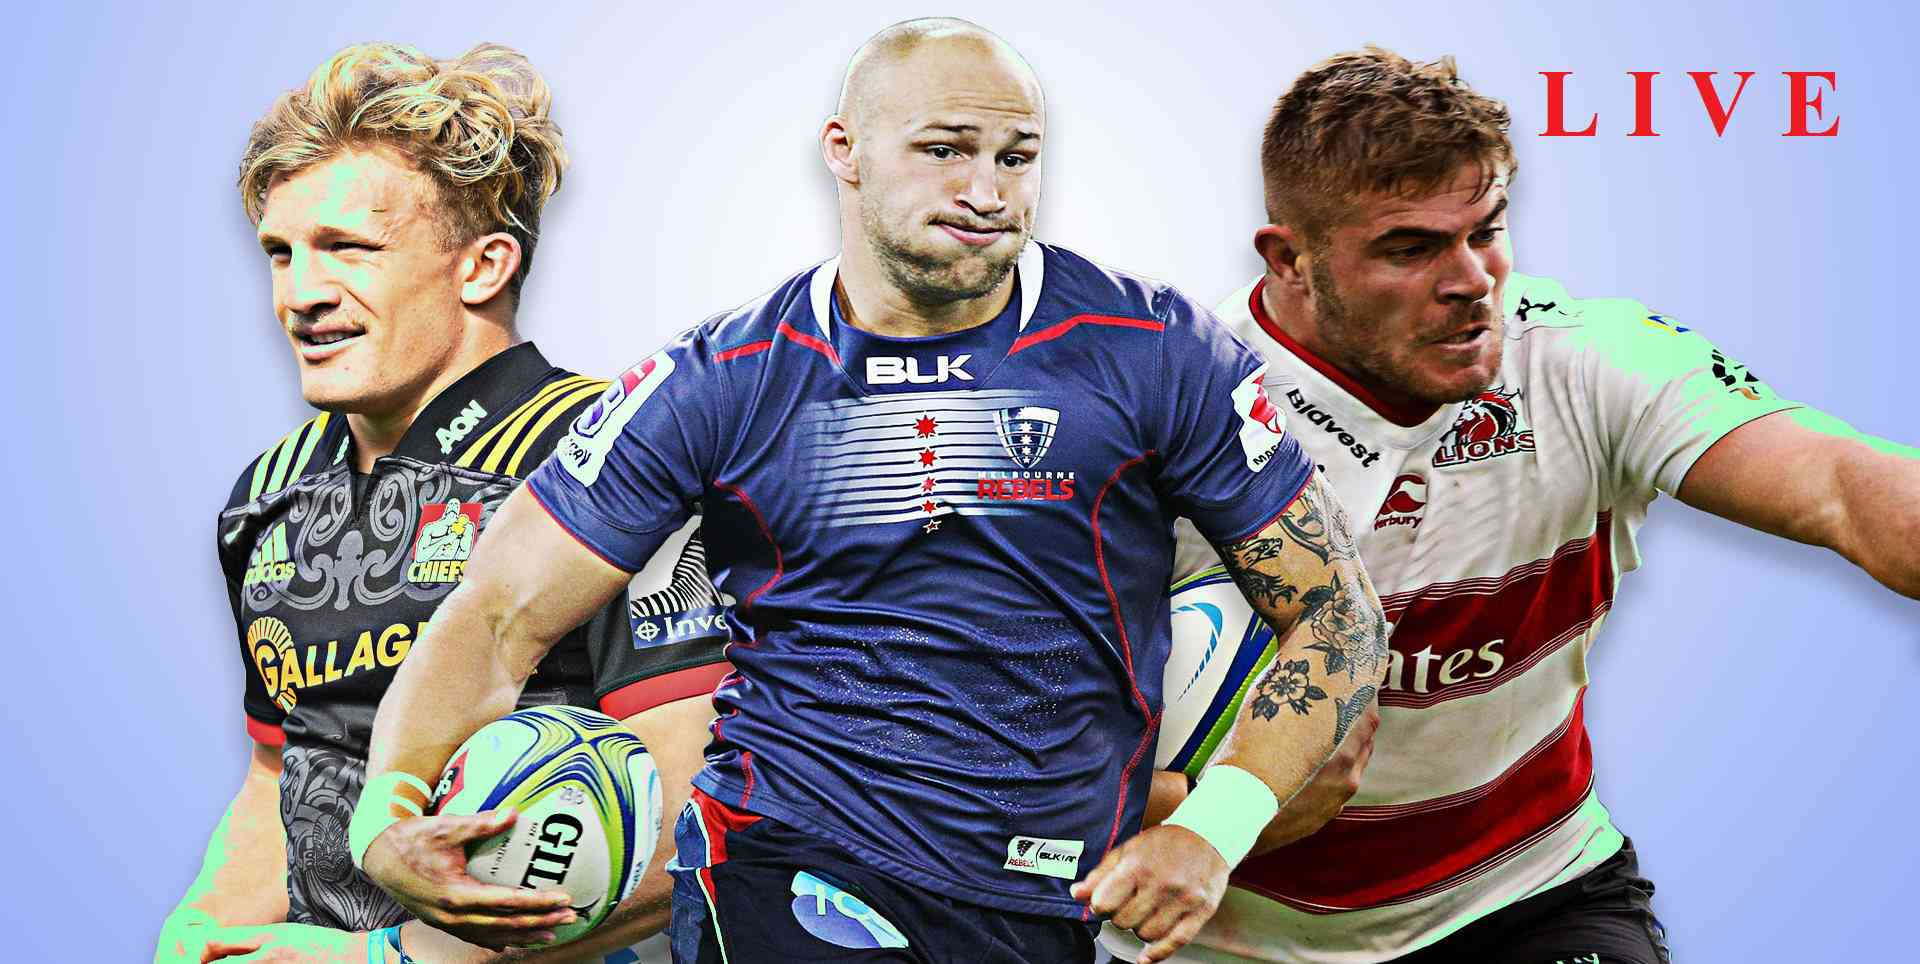 gloucester-rugby-vs-la-rochelle-rugby-live